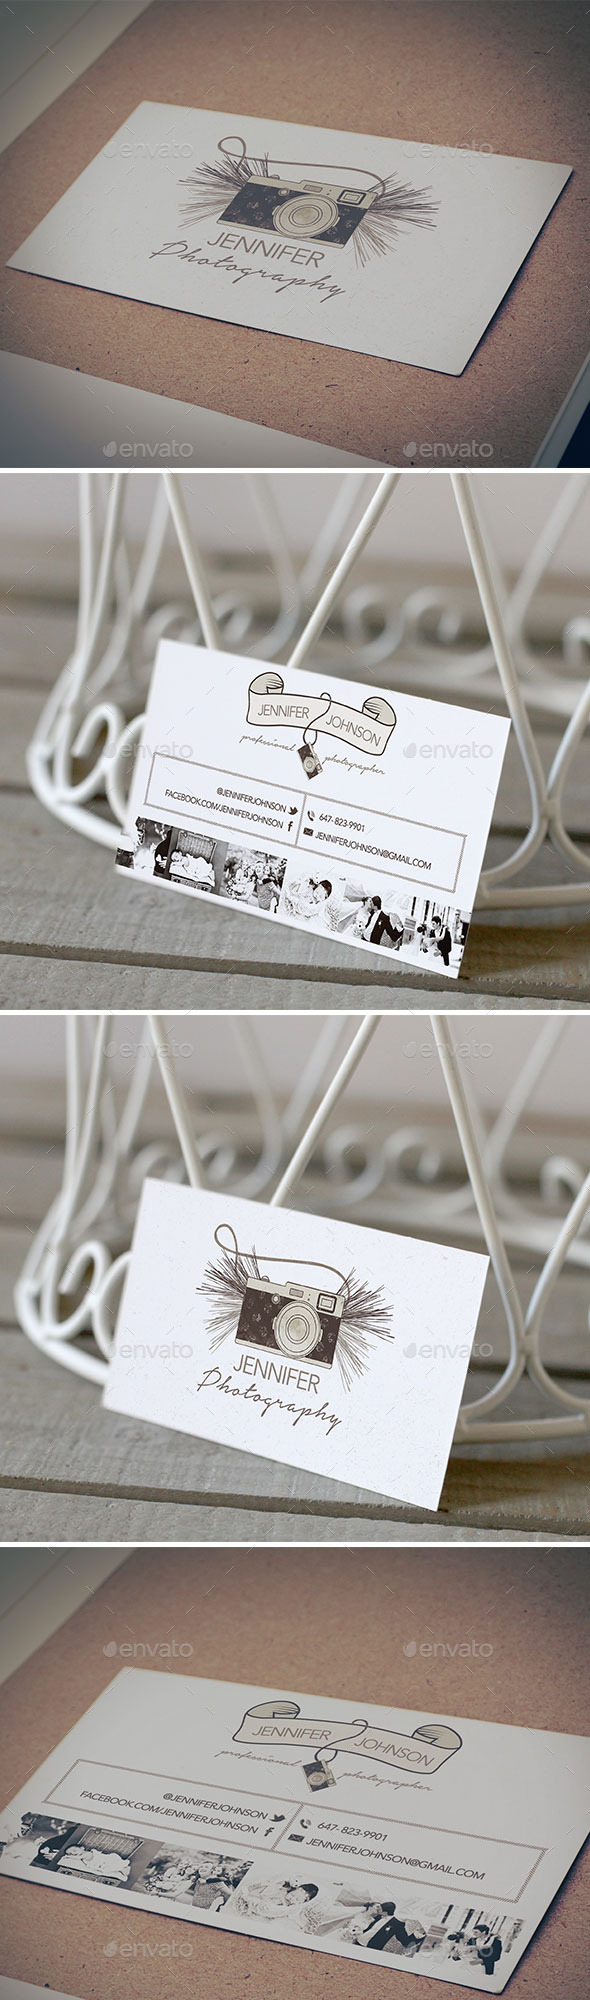 Photographer Business Card - Retro/Vintage Business Cards